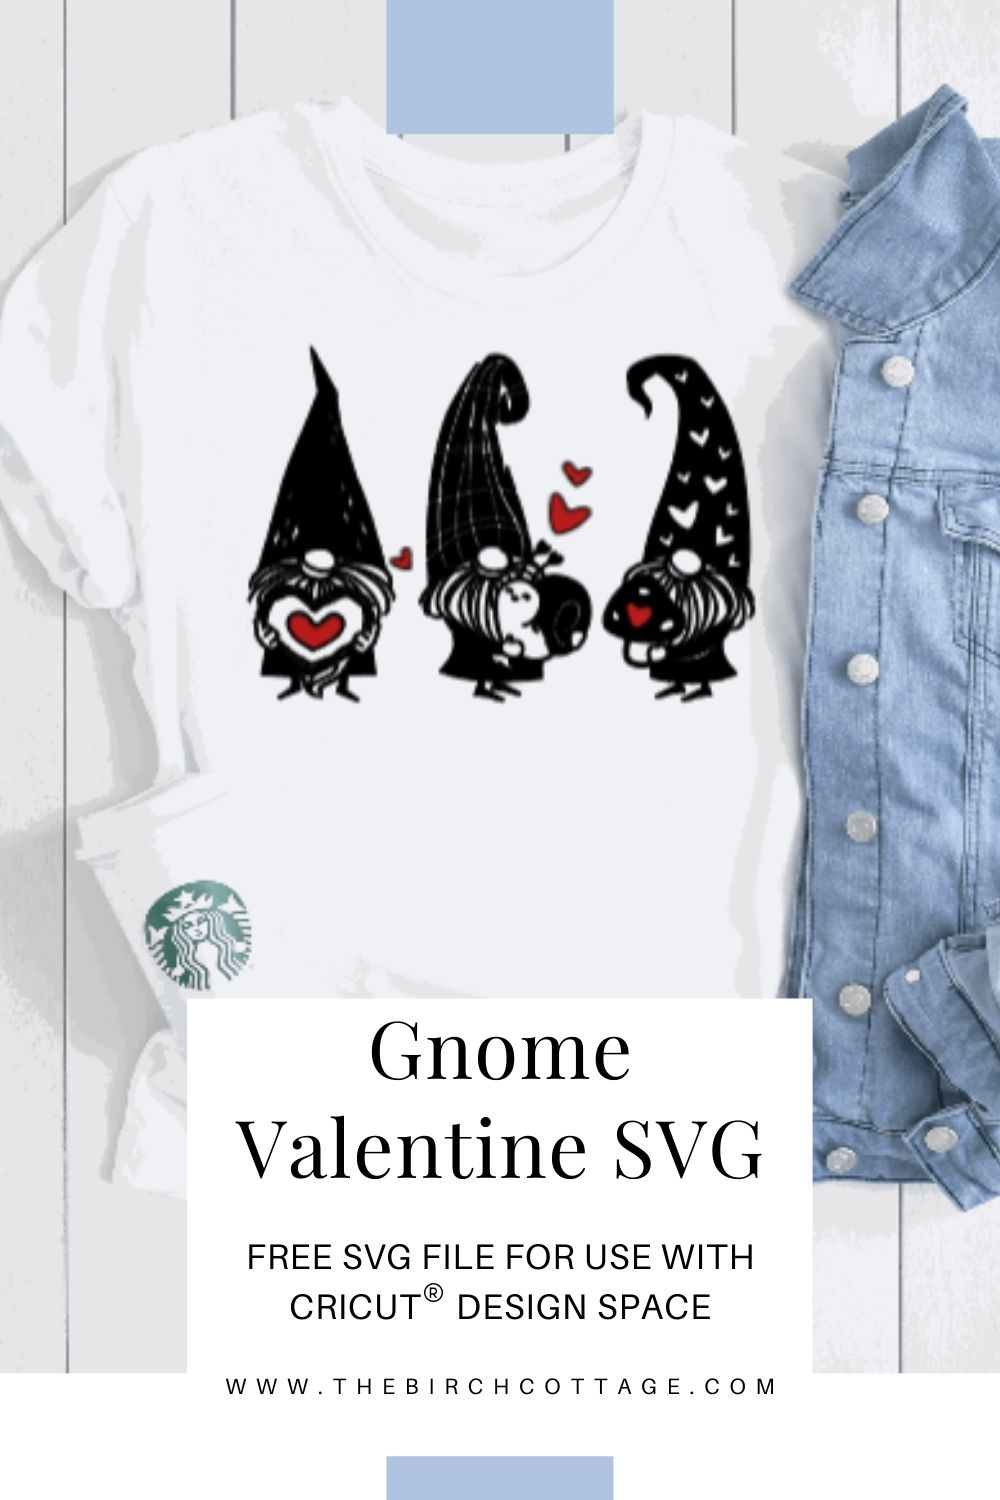 Use Cricut Design Space to add some Valentine's Day charm to t-shirts, bags, mugs and more with this shared Valentine Gnome project file.